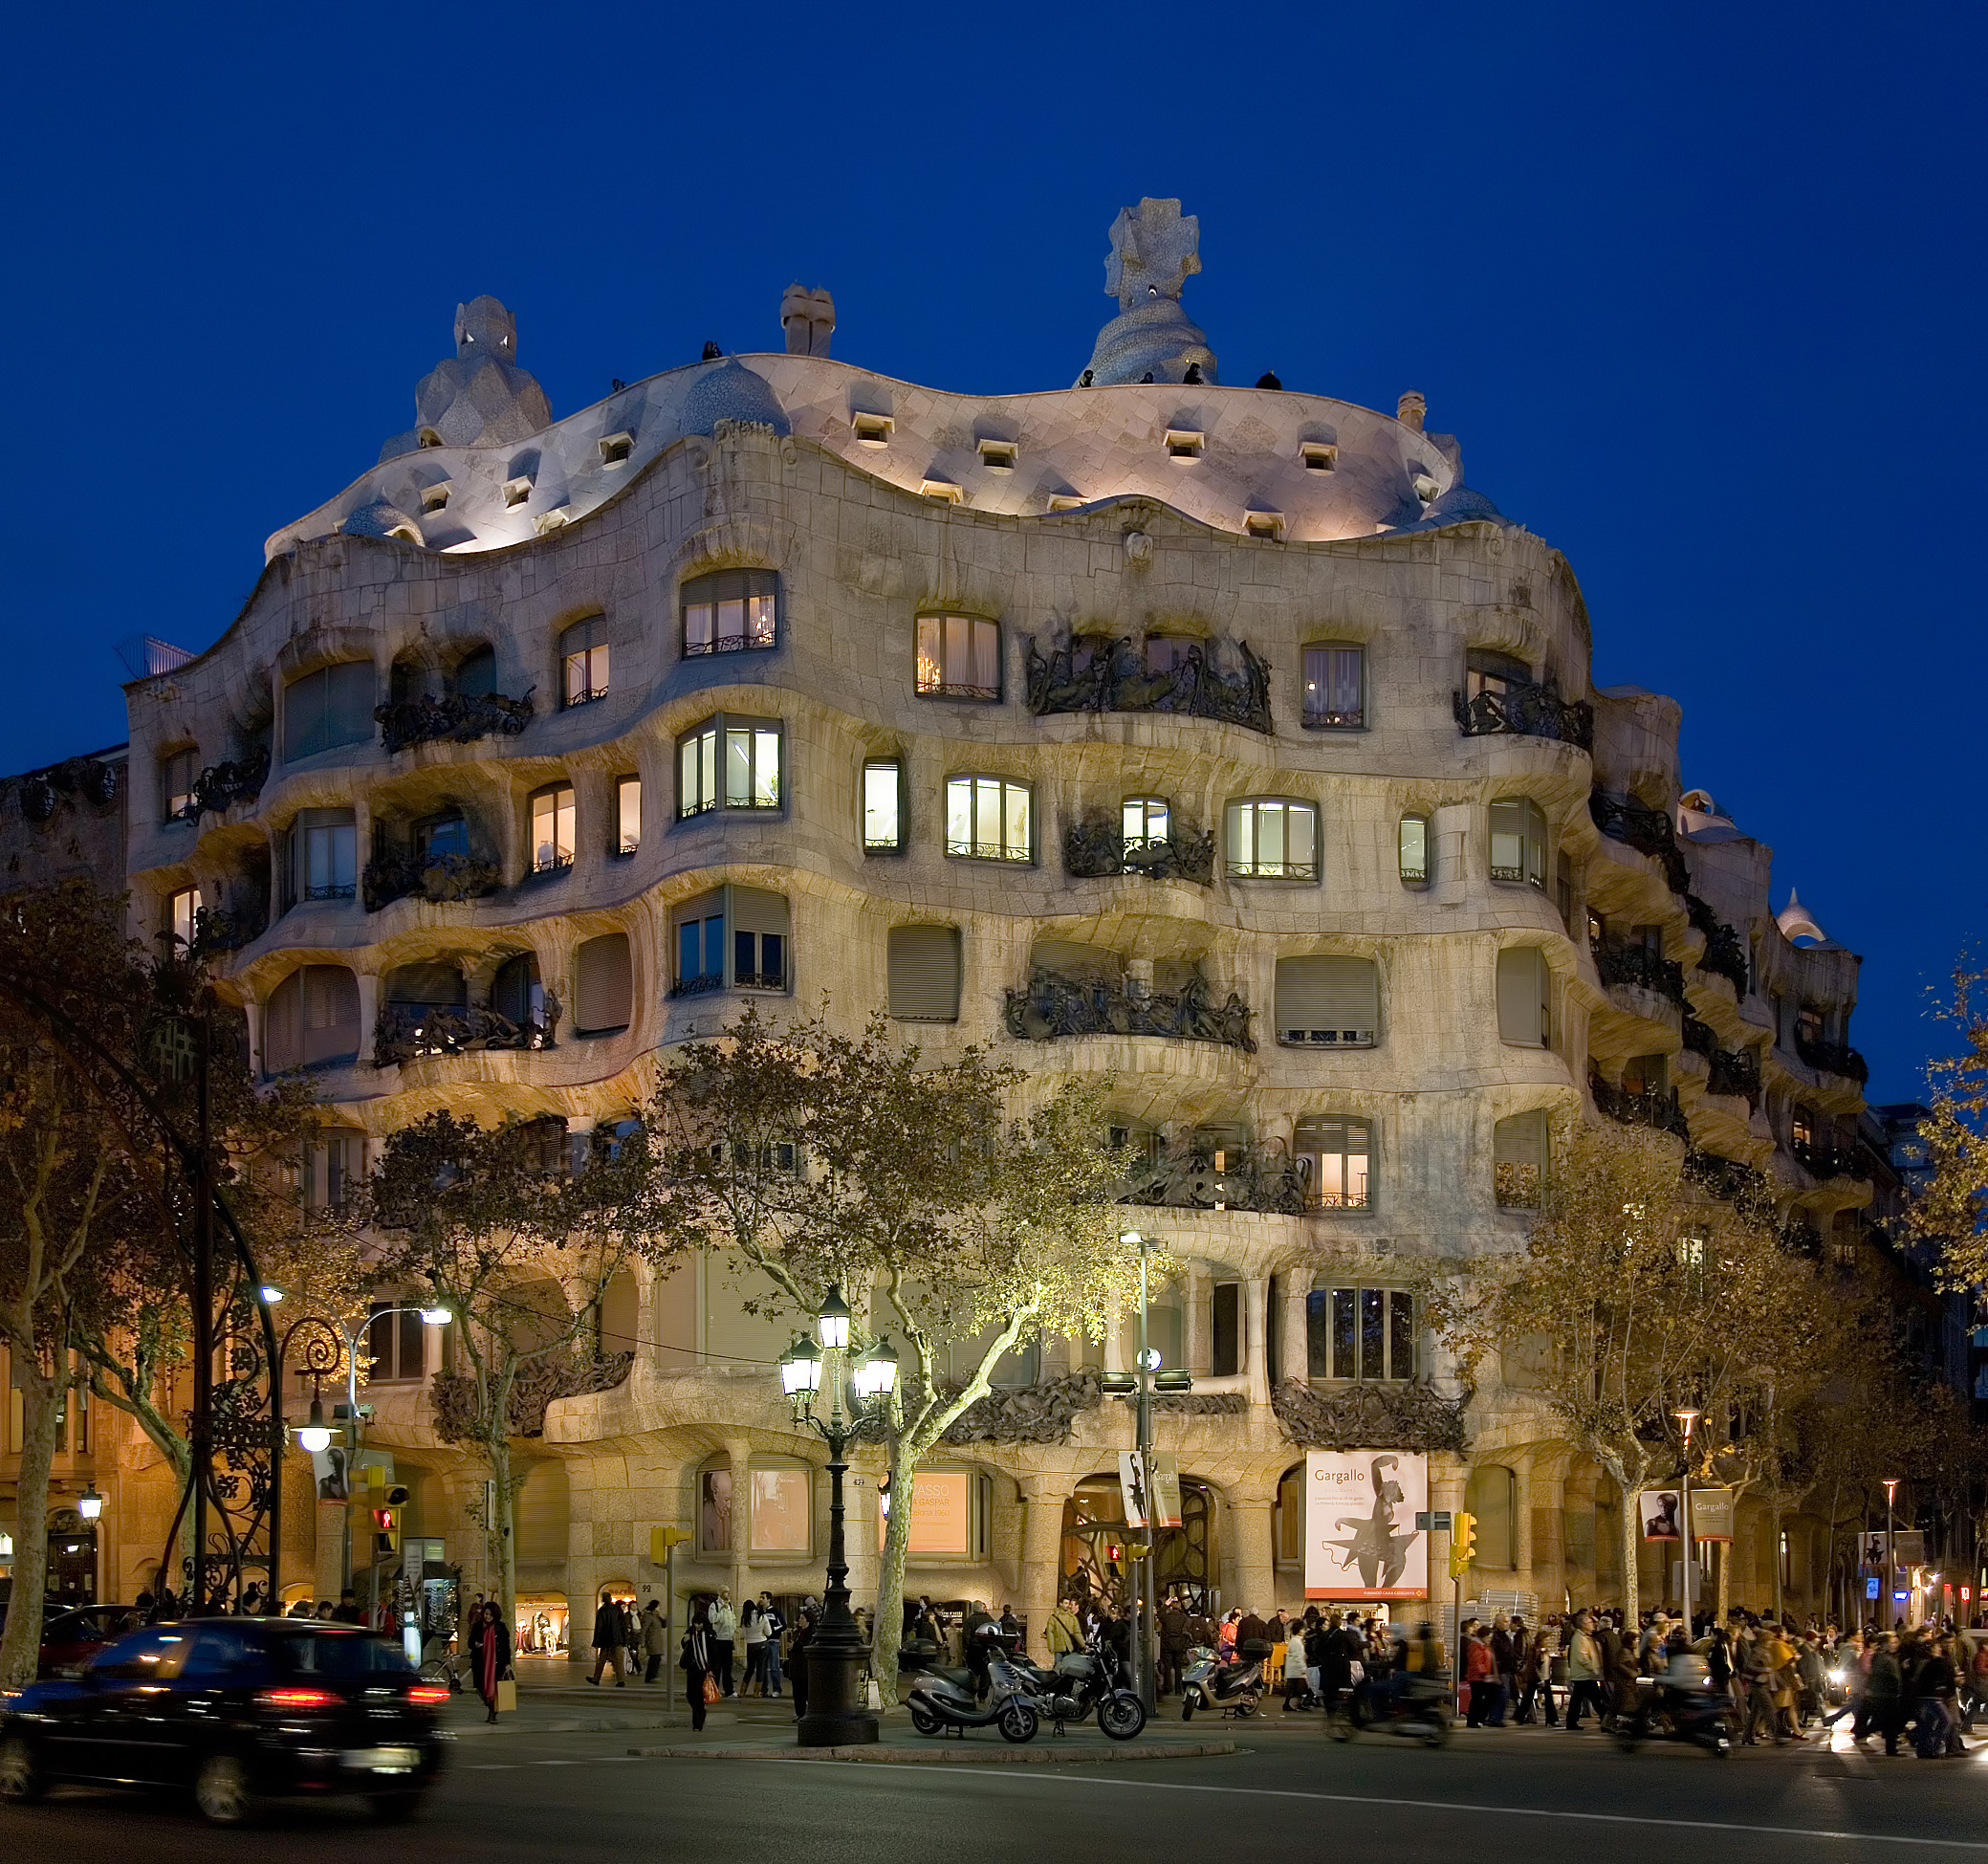 Casa Milà at dusk in Barcelona, Spain. The bui...